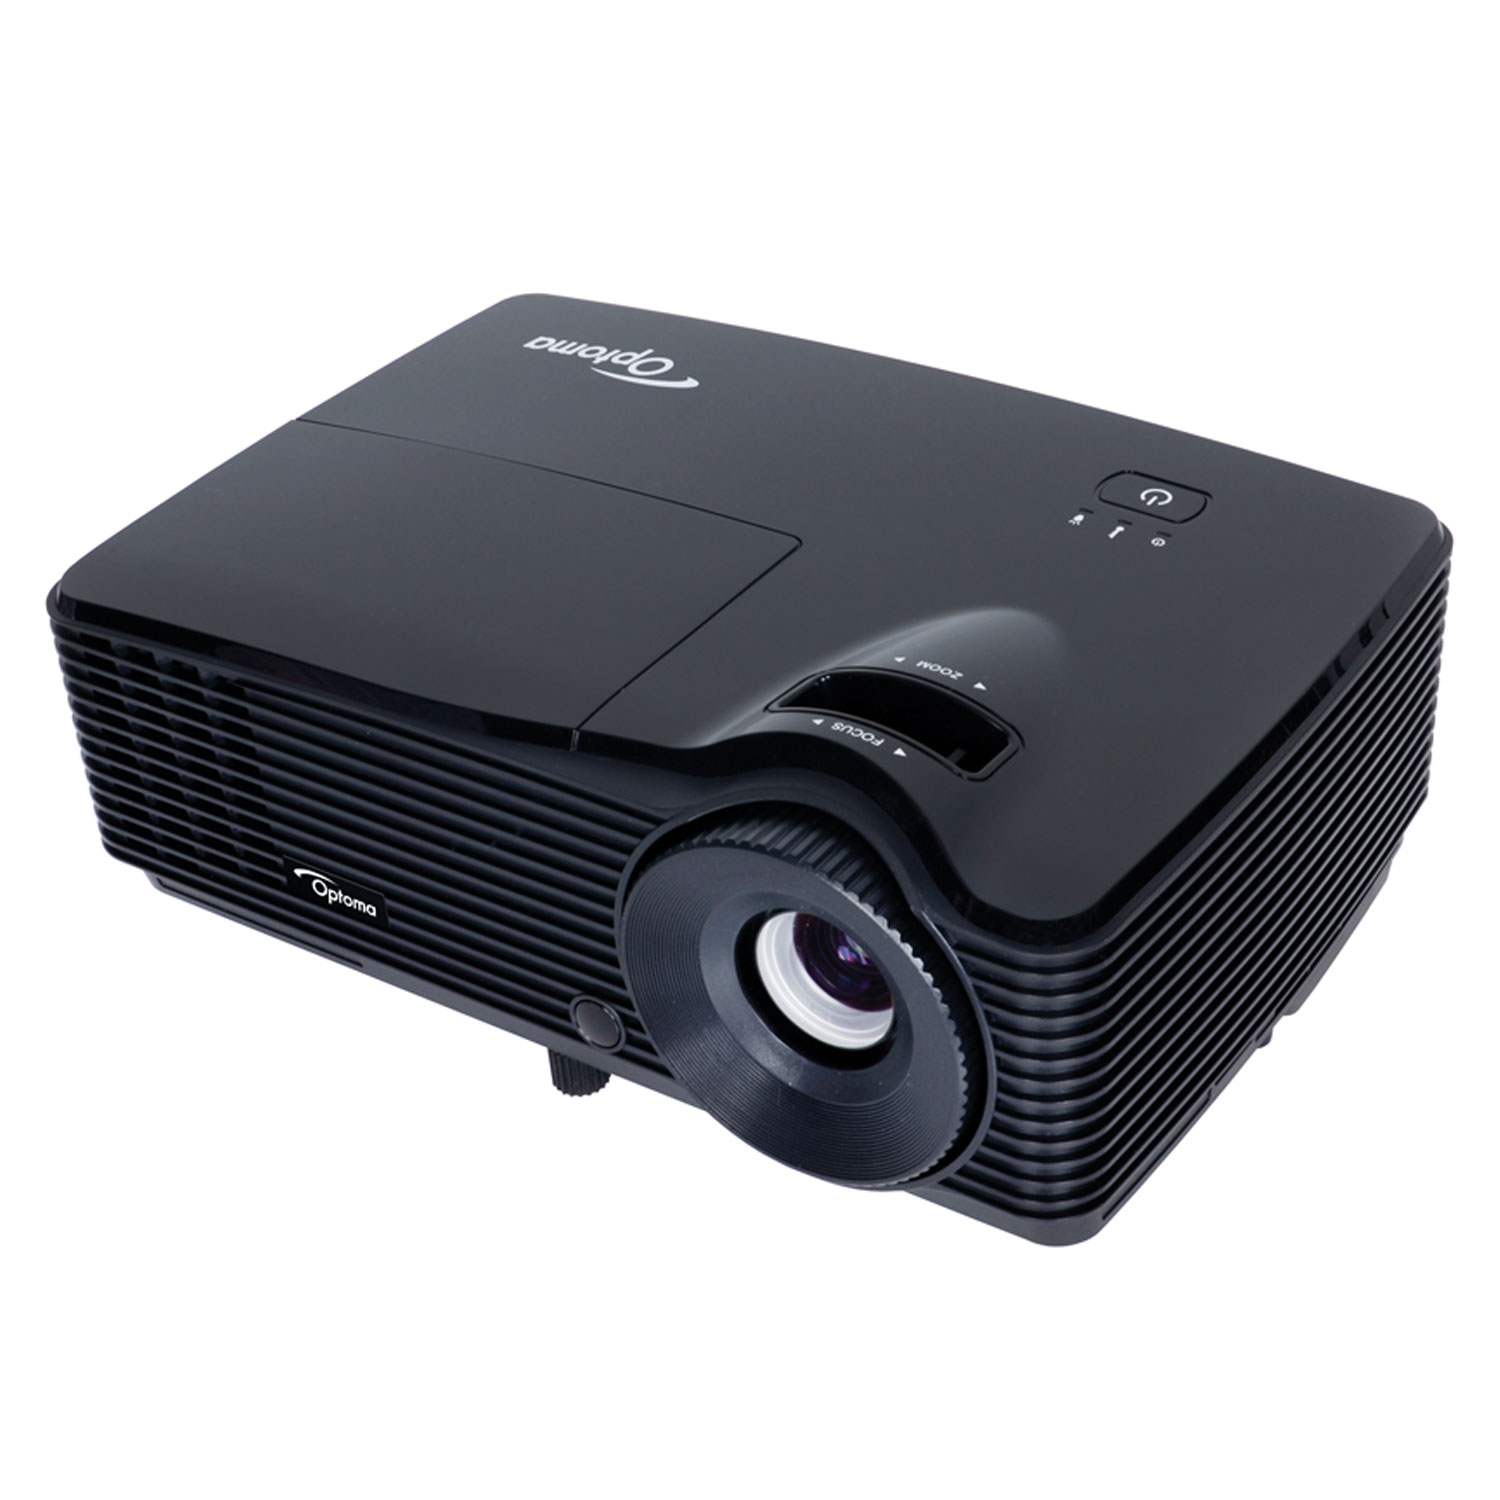 Optoma s311 vid oprojecteur optoma sur - Support plafond videoprojecteur optoma ...